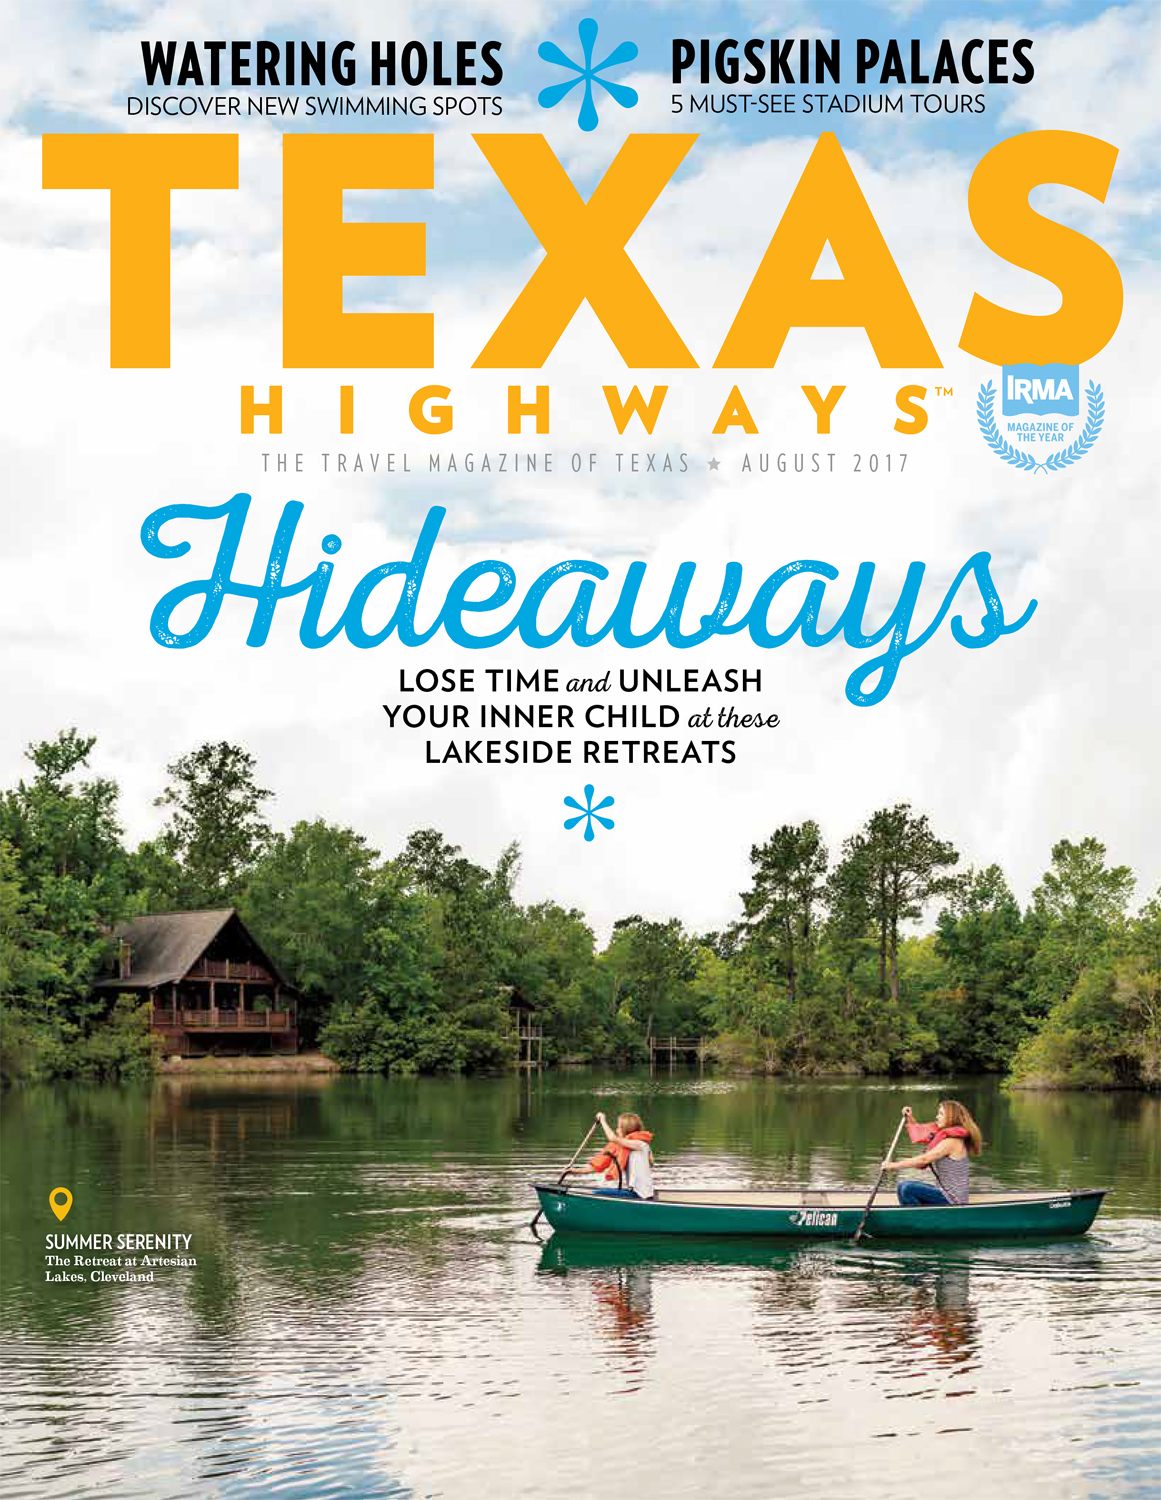 SUMMER HIDEAWAYS /TEXAS HIGHWAYS -